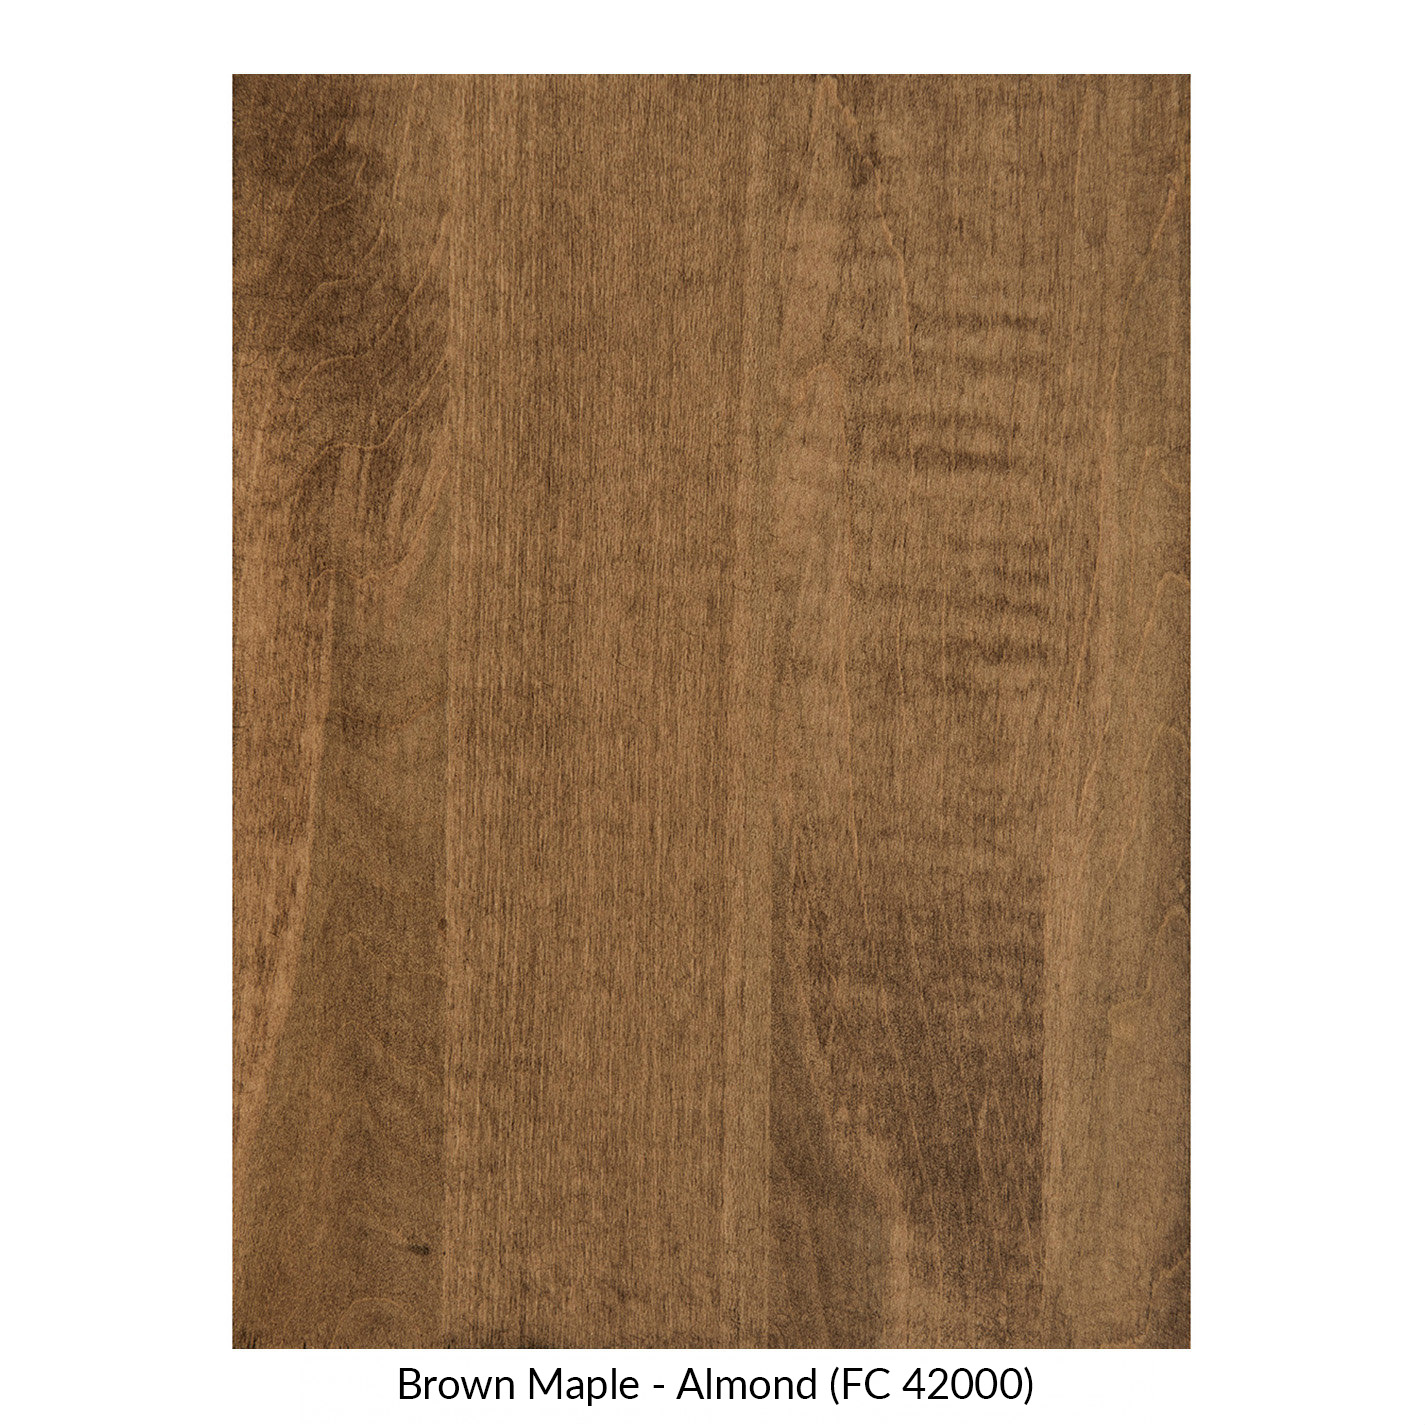 spectrum-brown-maple-almond-fc-42000...jpg